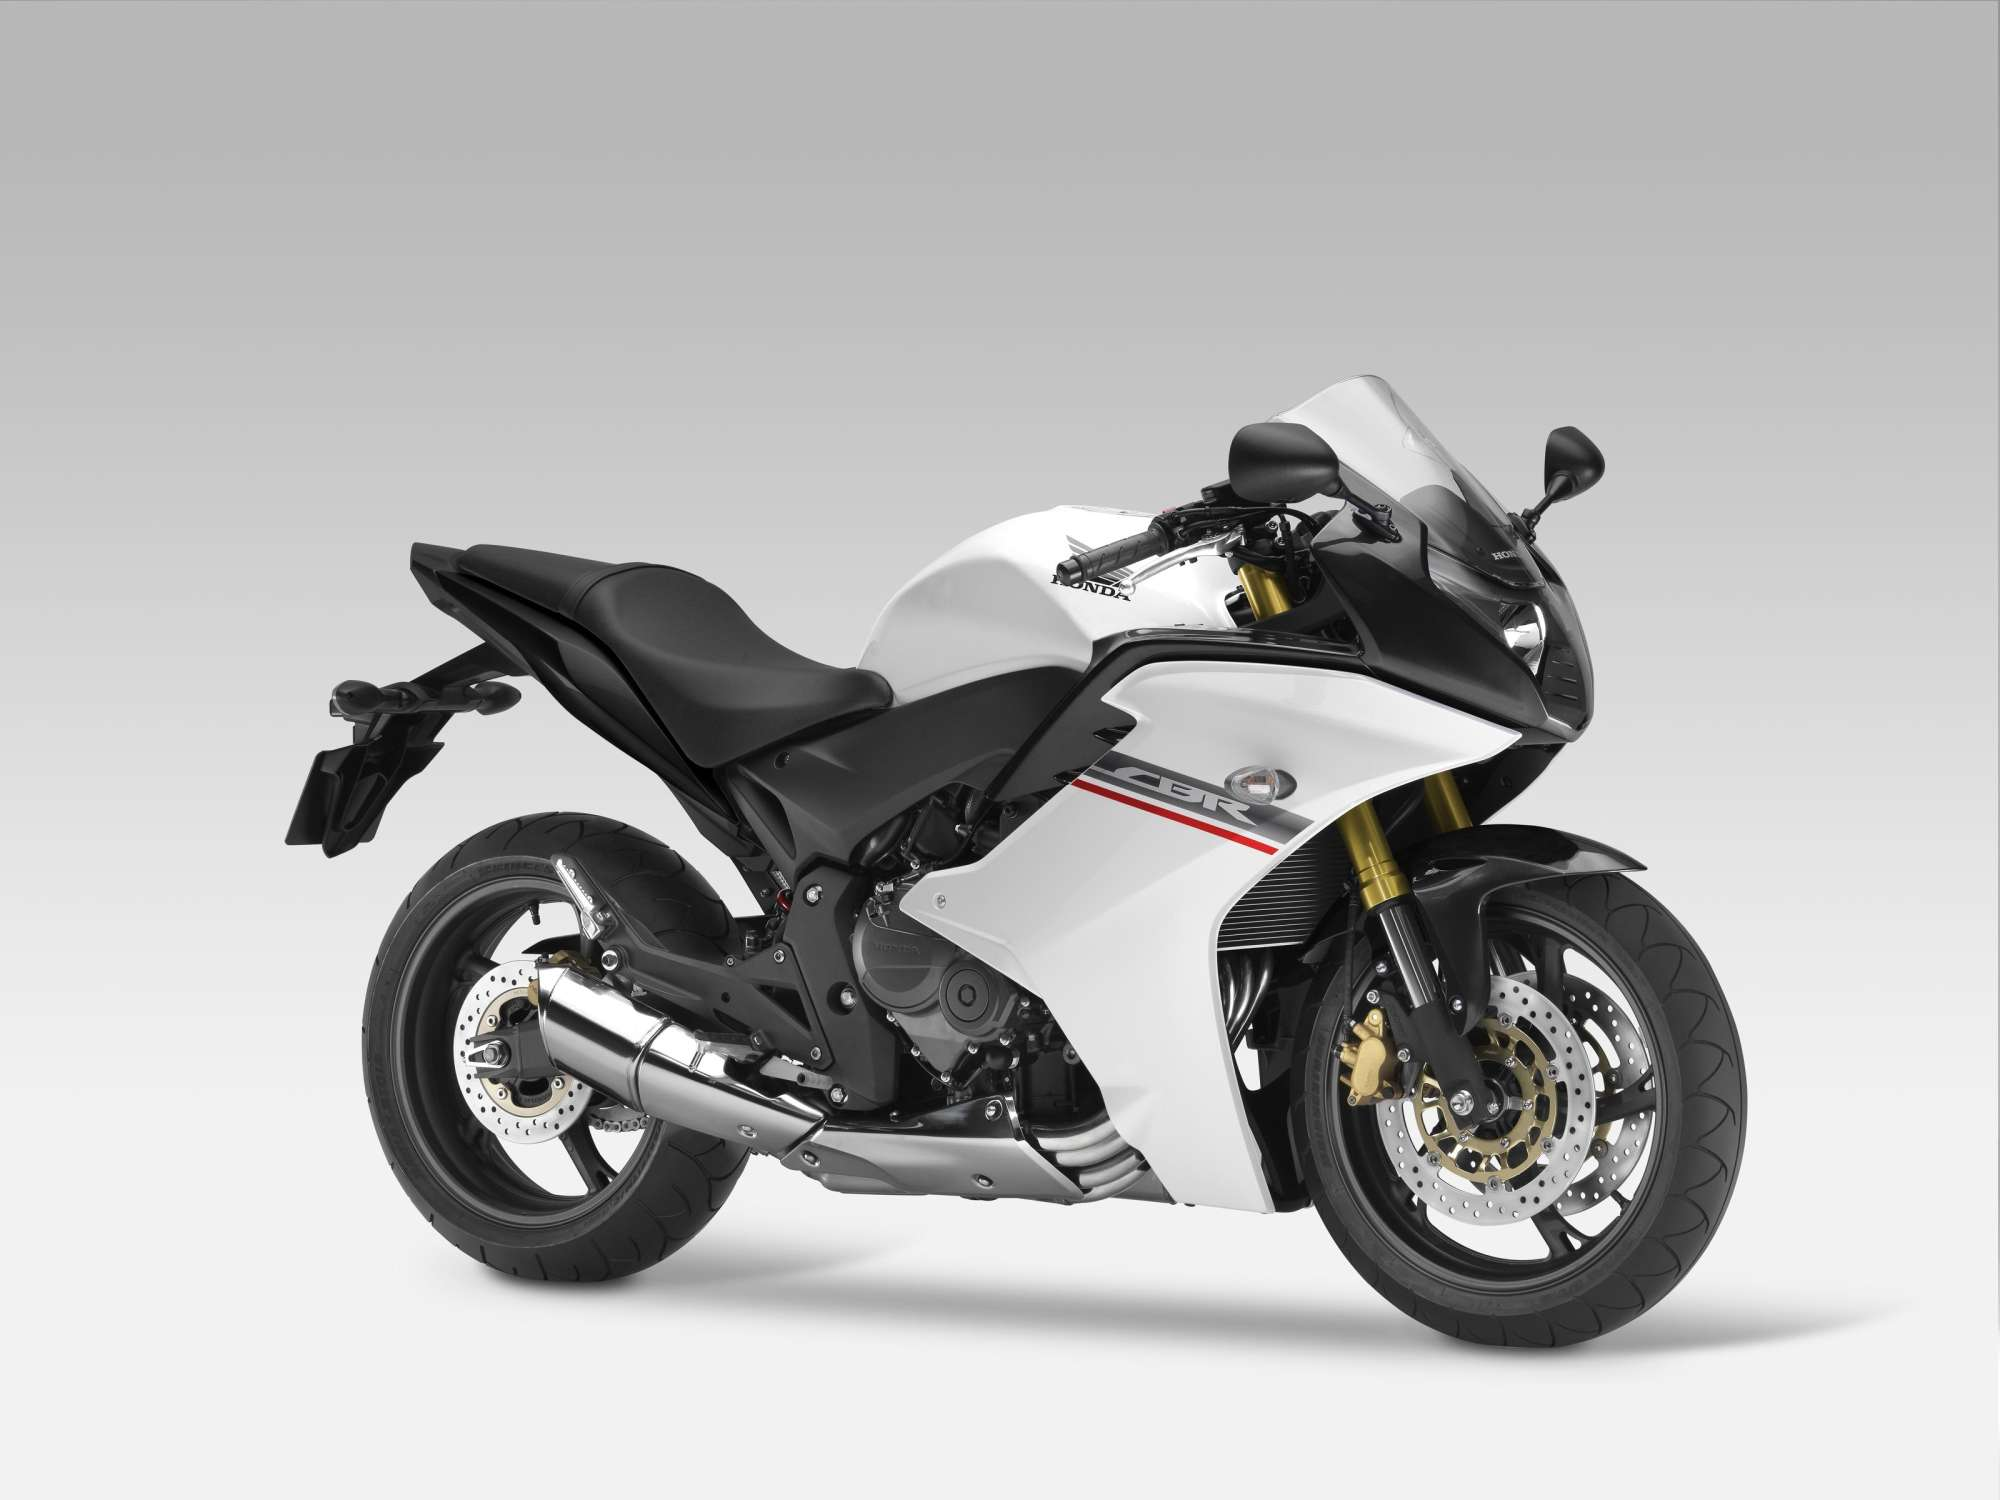 honda cbr 600 f test gebrauchte bilder technische daten. Black Bedroom Furniture Sets. Home Design Ideas